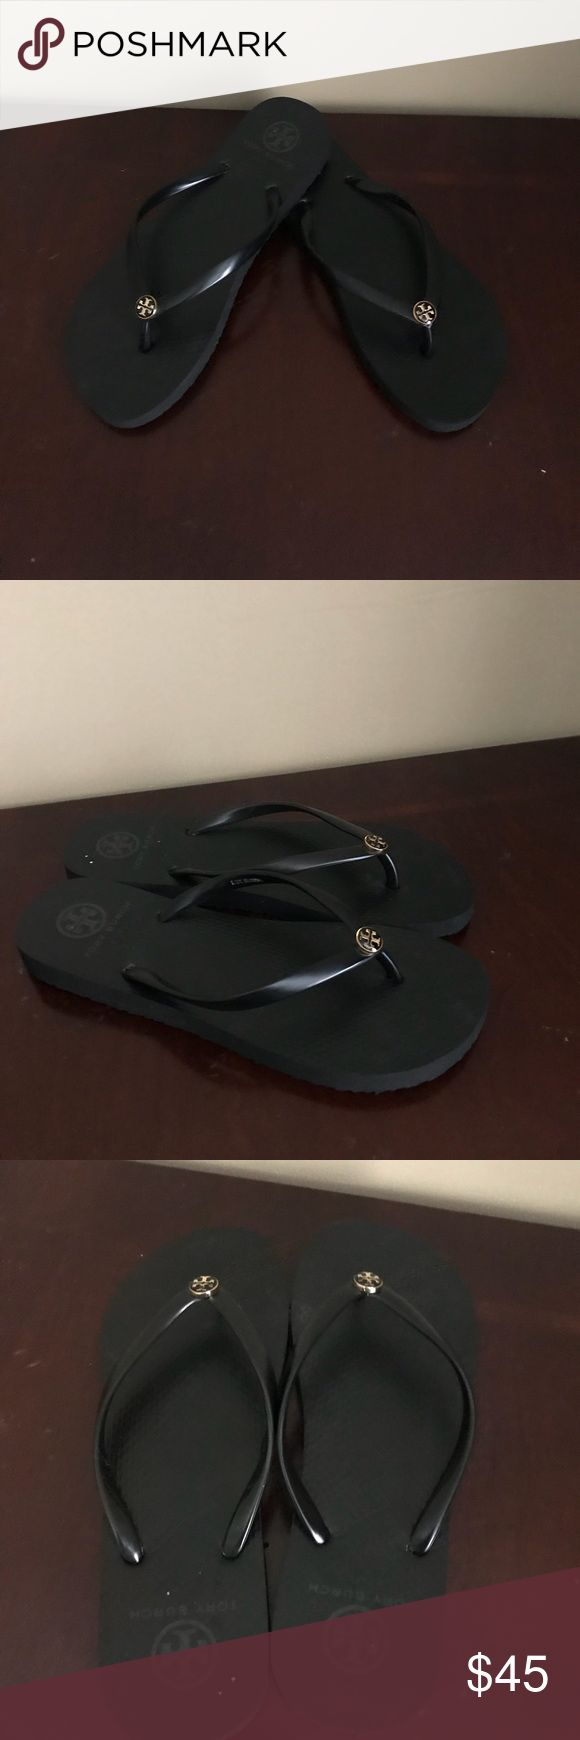 Tory Burch flip flop Tory Burch flip flop brand new with out box no tag no trade A signature logo discreetly brands a cute, casual flip-flop. Tory Burch Shoes Sandals